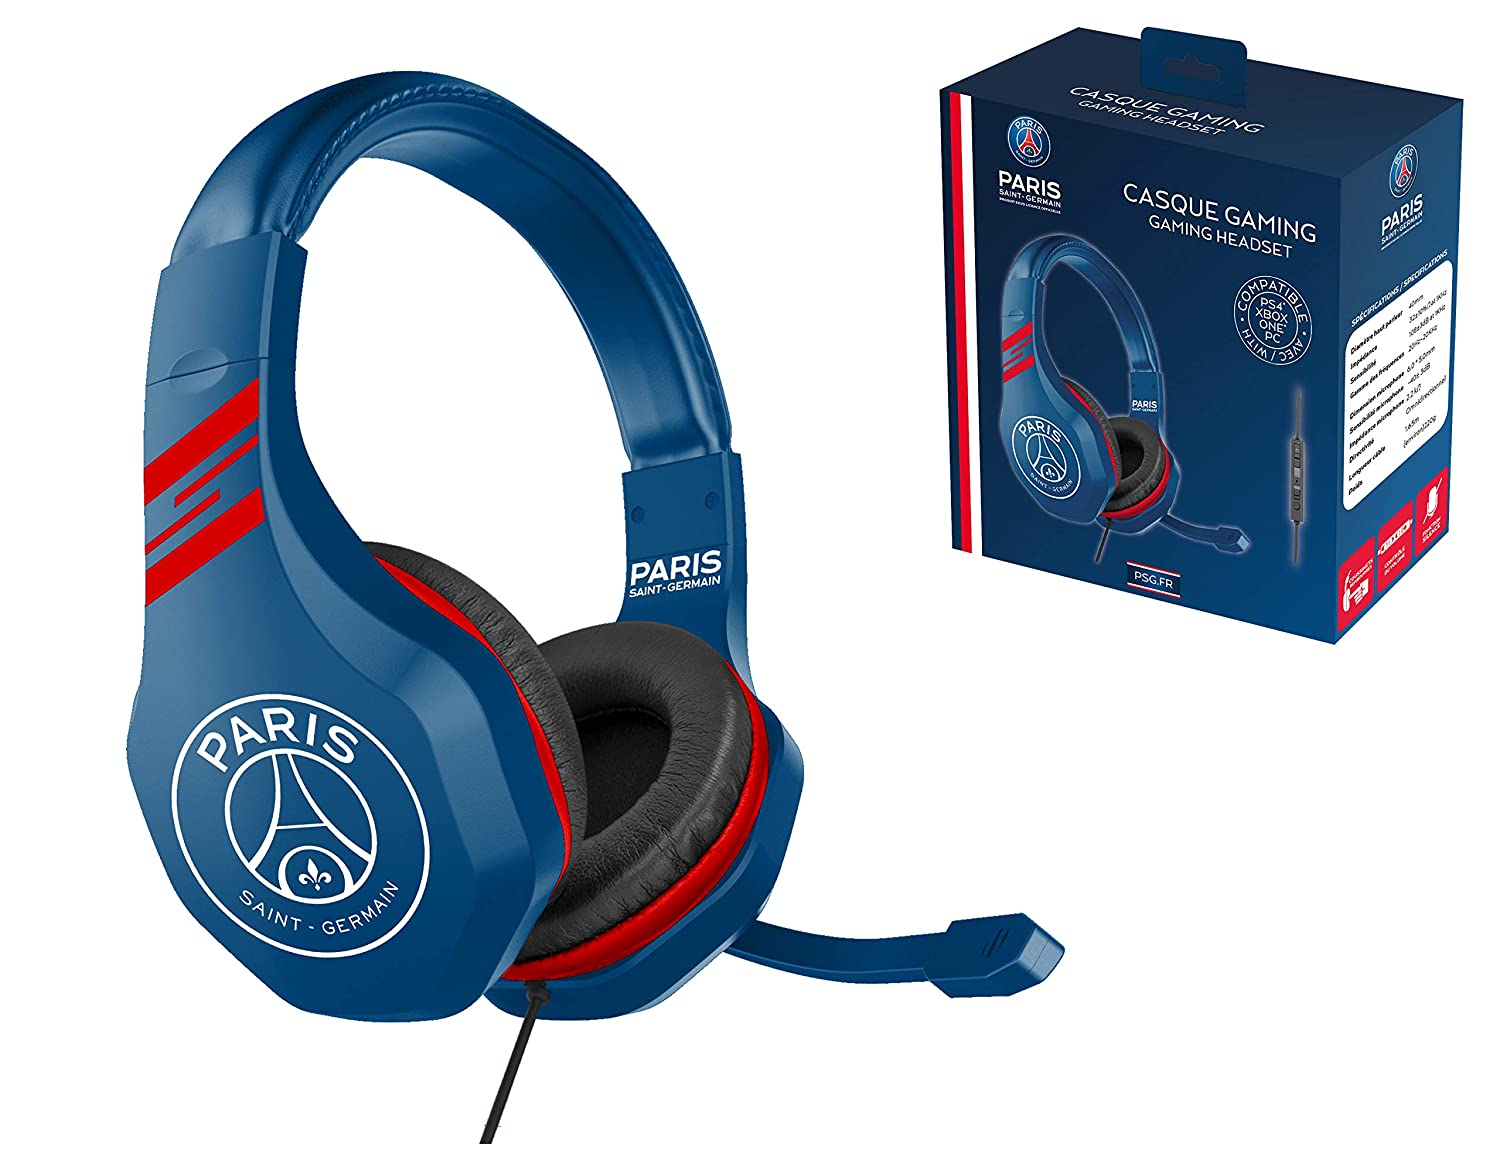 PSG Paris Saint Germain Auriculares gaming accesorio PS4, PS4 Pro, Xbox One, PC: Amazon.es: Videojuegos